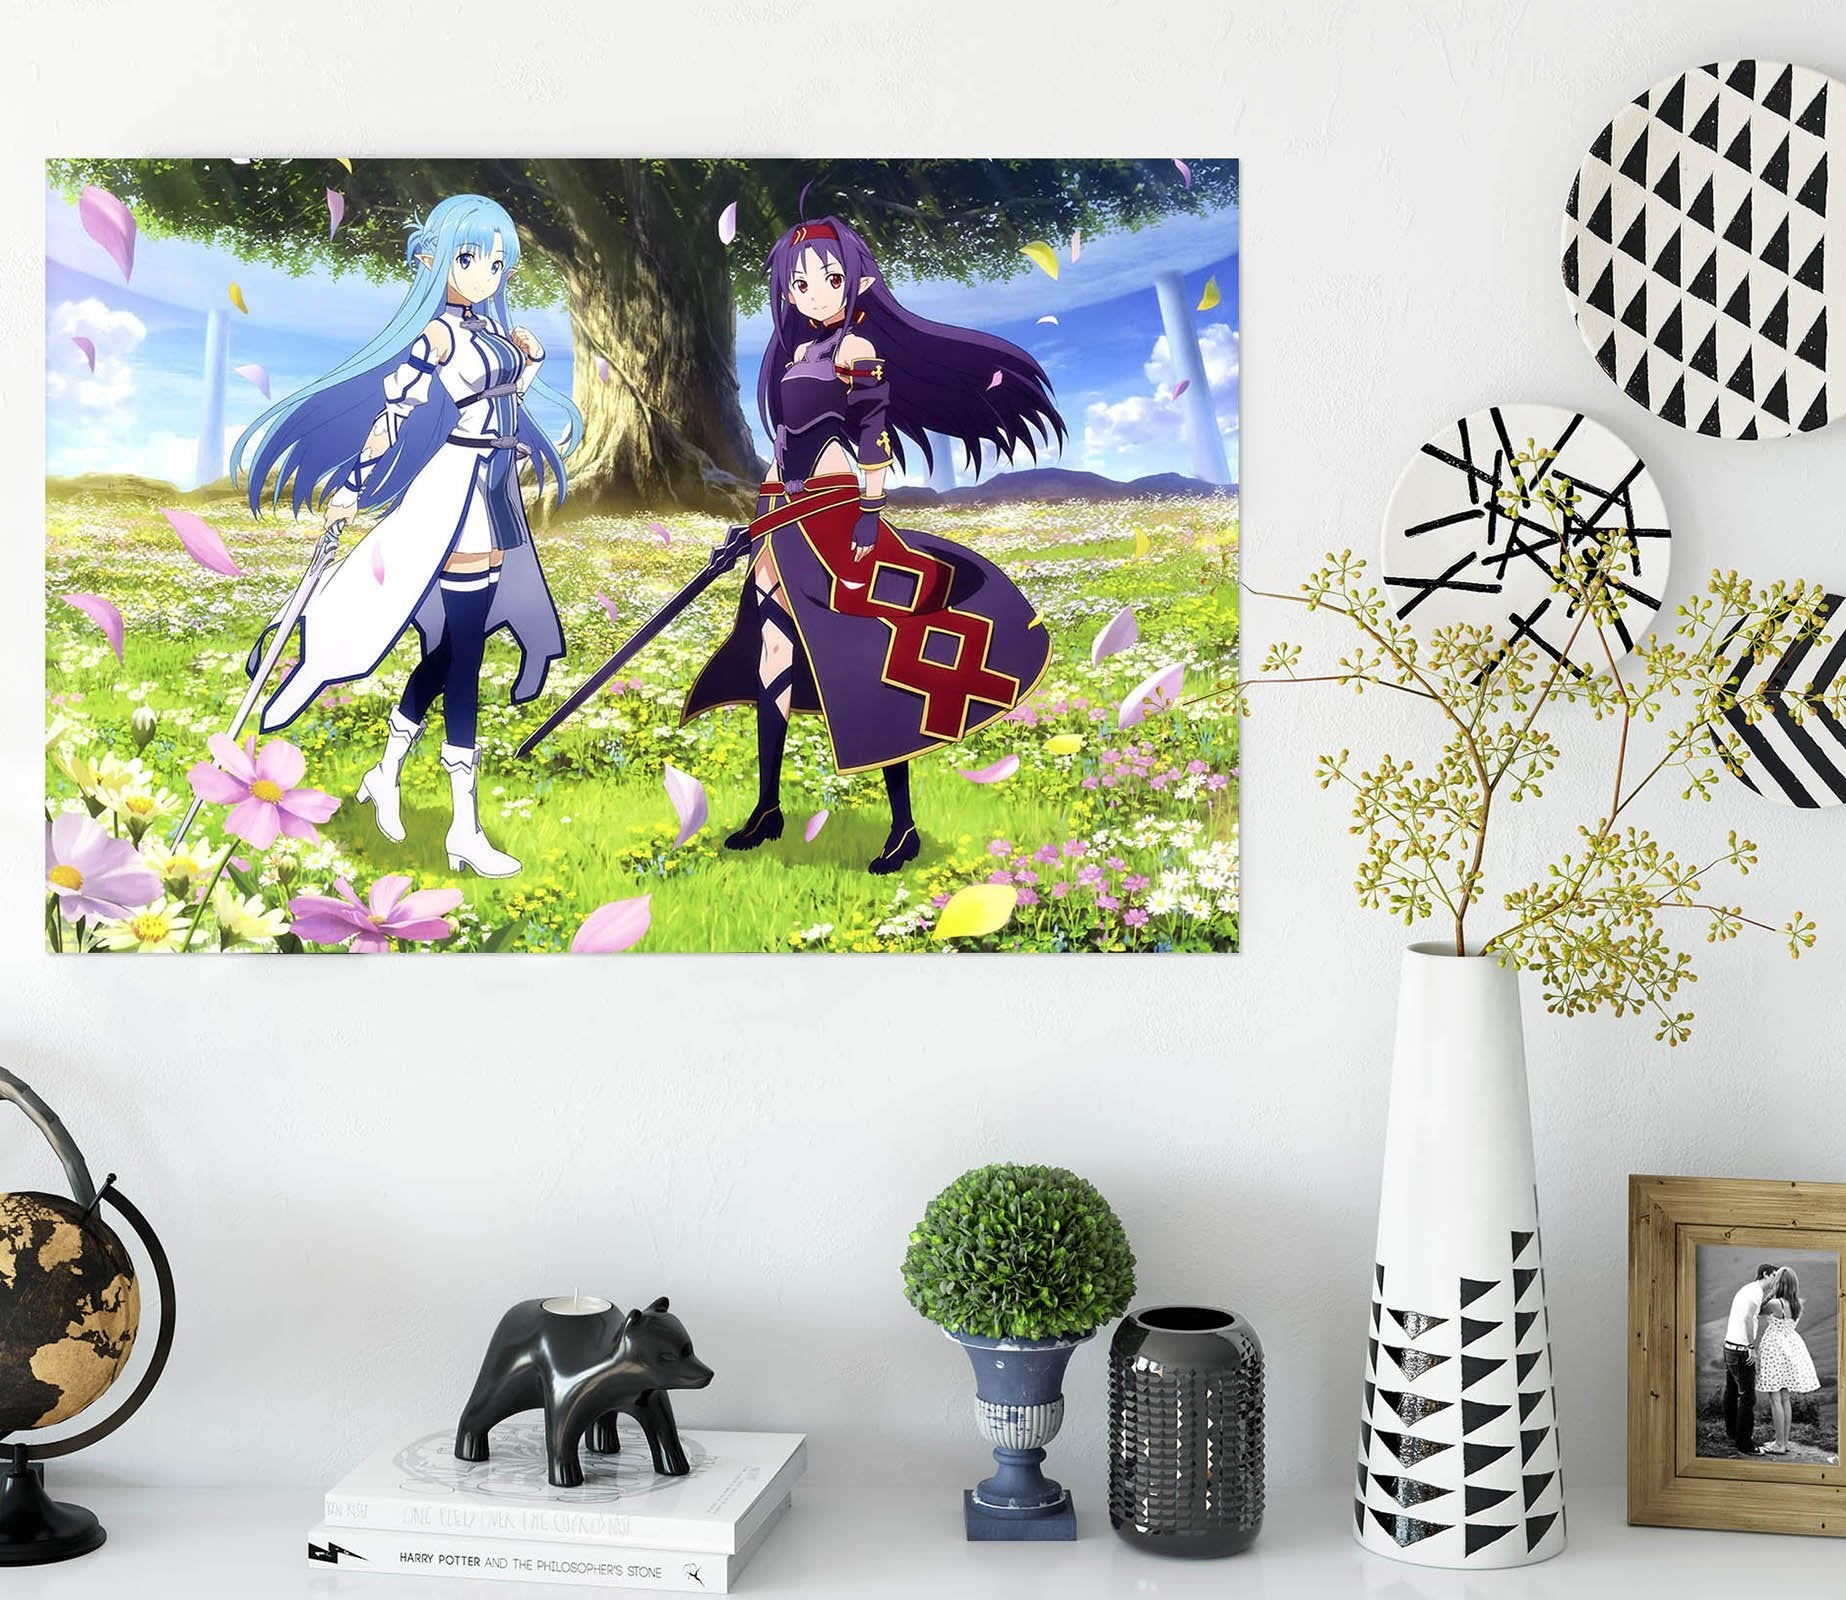 3D Sword Art Online 894 Anime Wall Stickers Wallpaper AJ Wallpaper 2